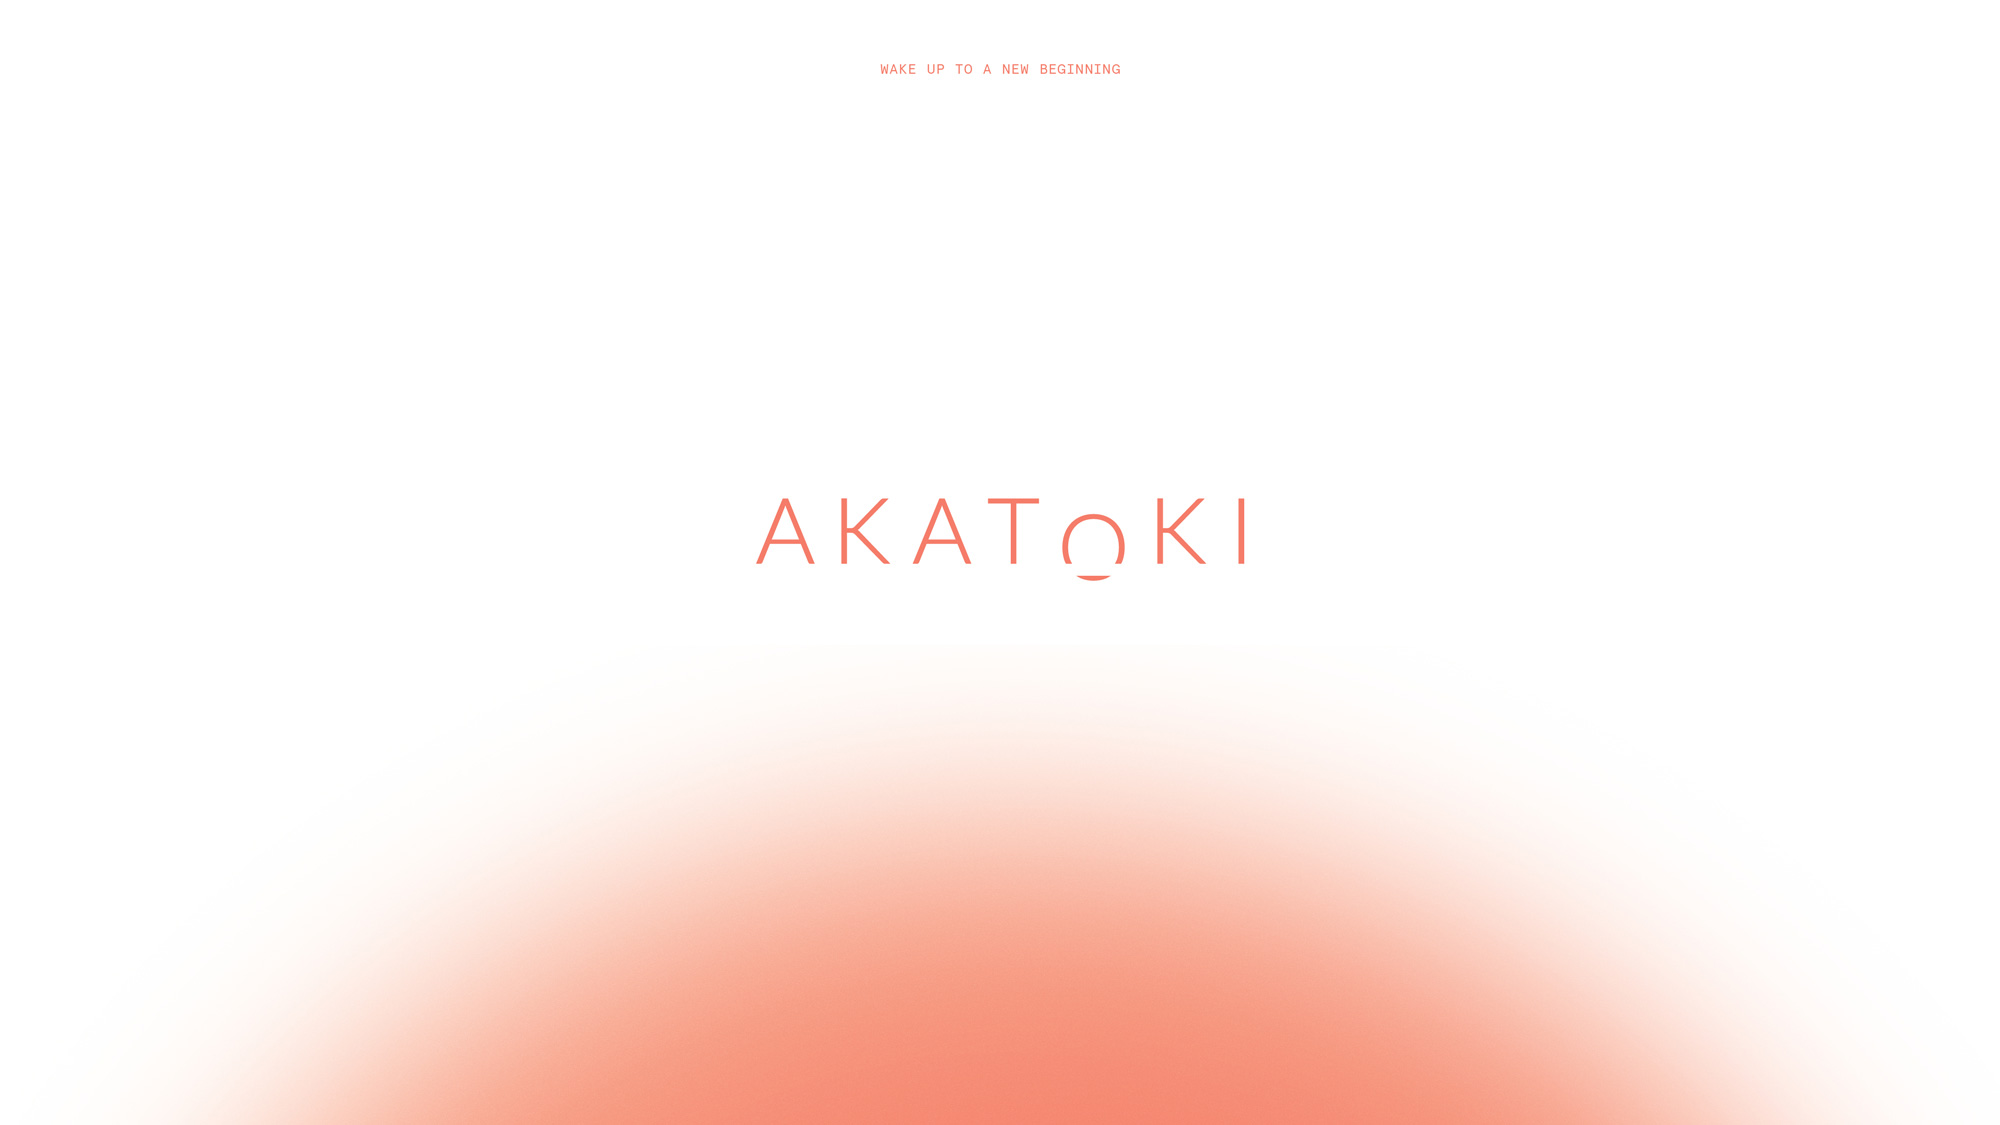 Brand New New Logo And Identity For The Prince Akatoki By